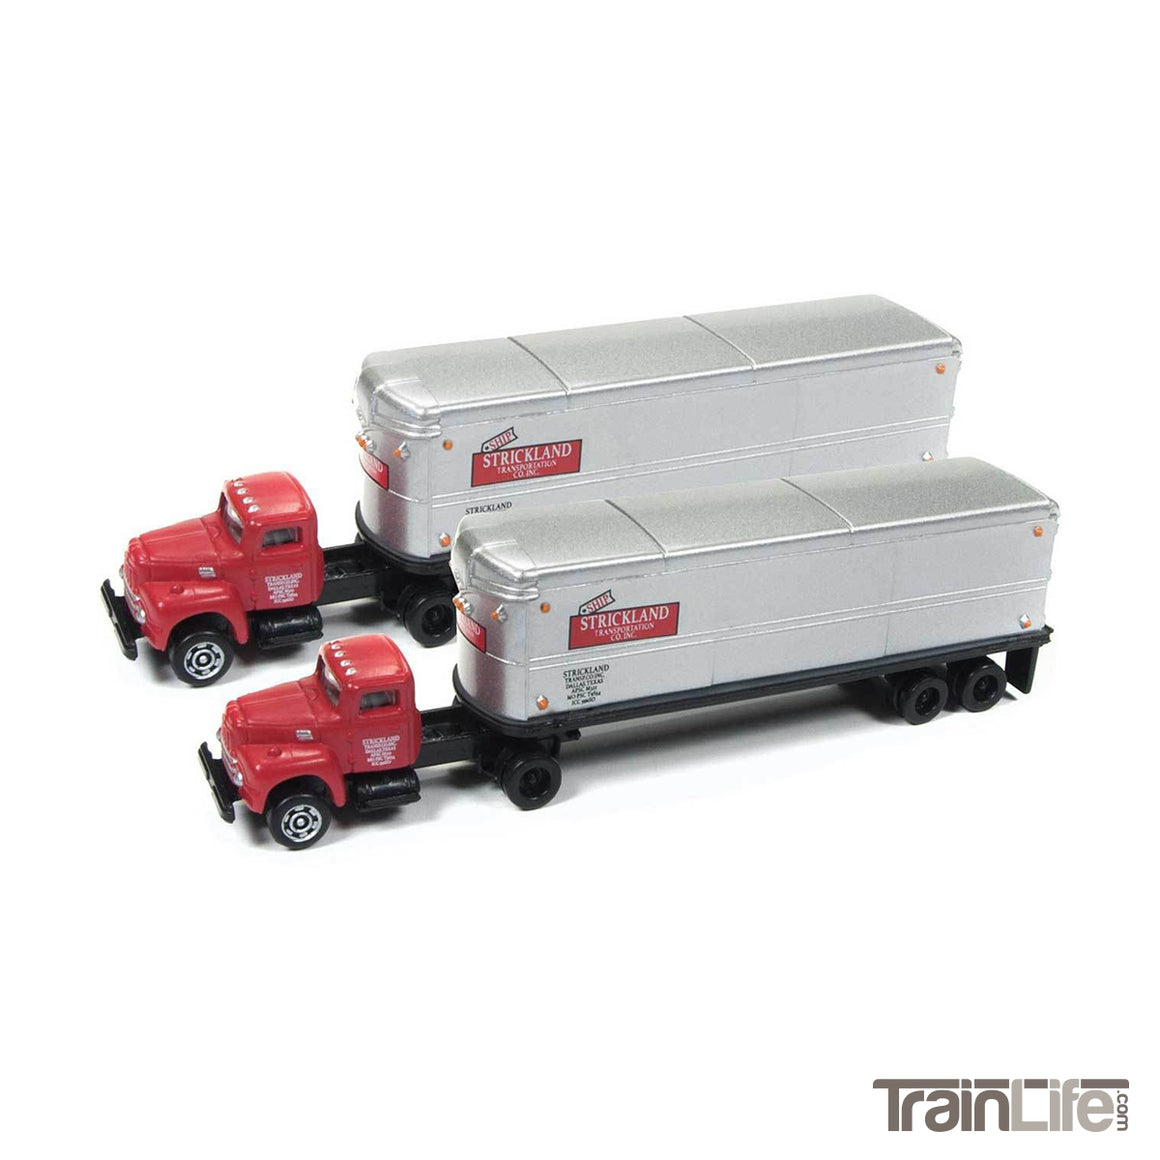 N Scale: IH R-190 Tractor & Trailer Set - Strickland Transportation - 2 Pack